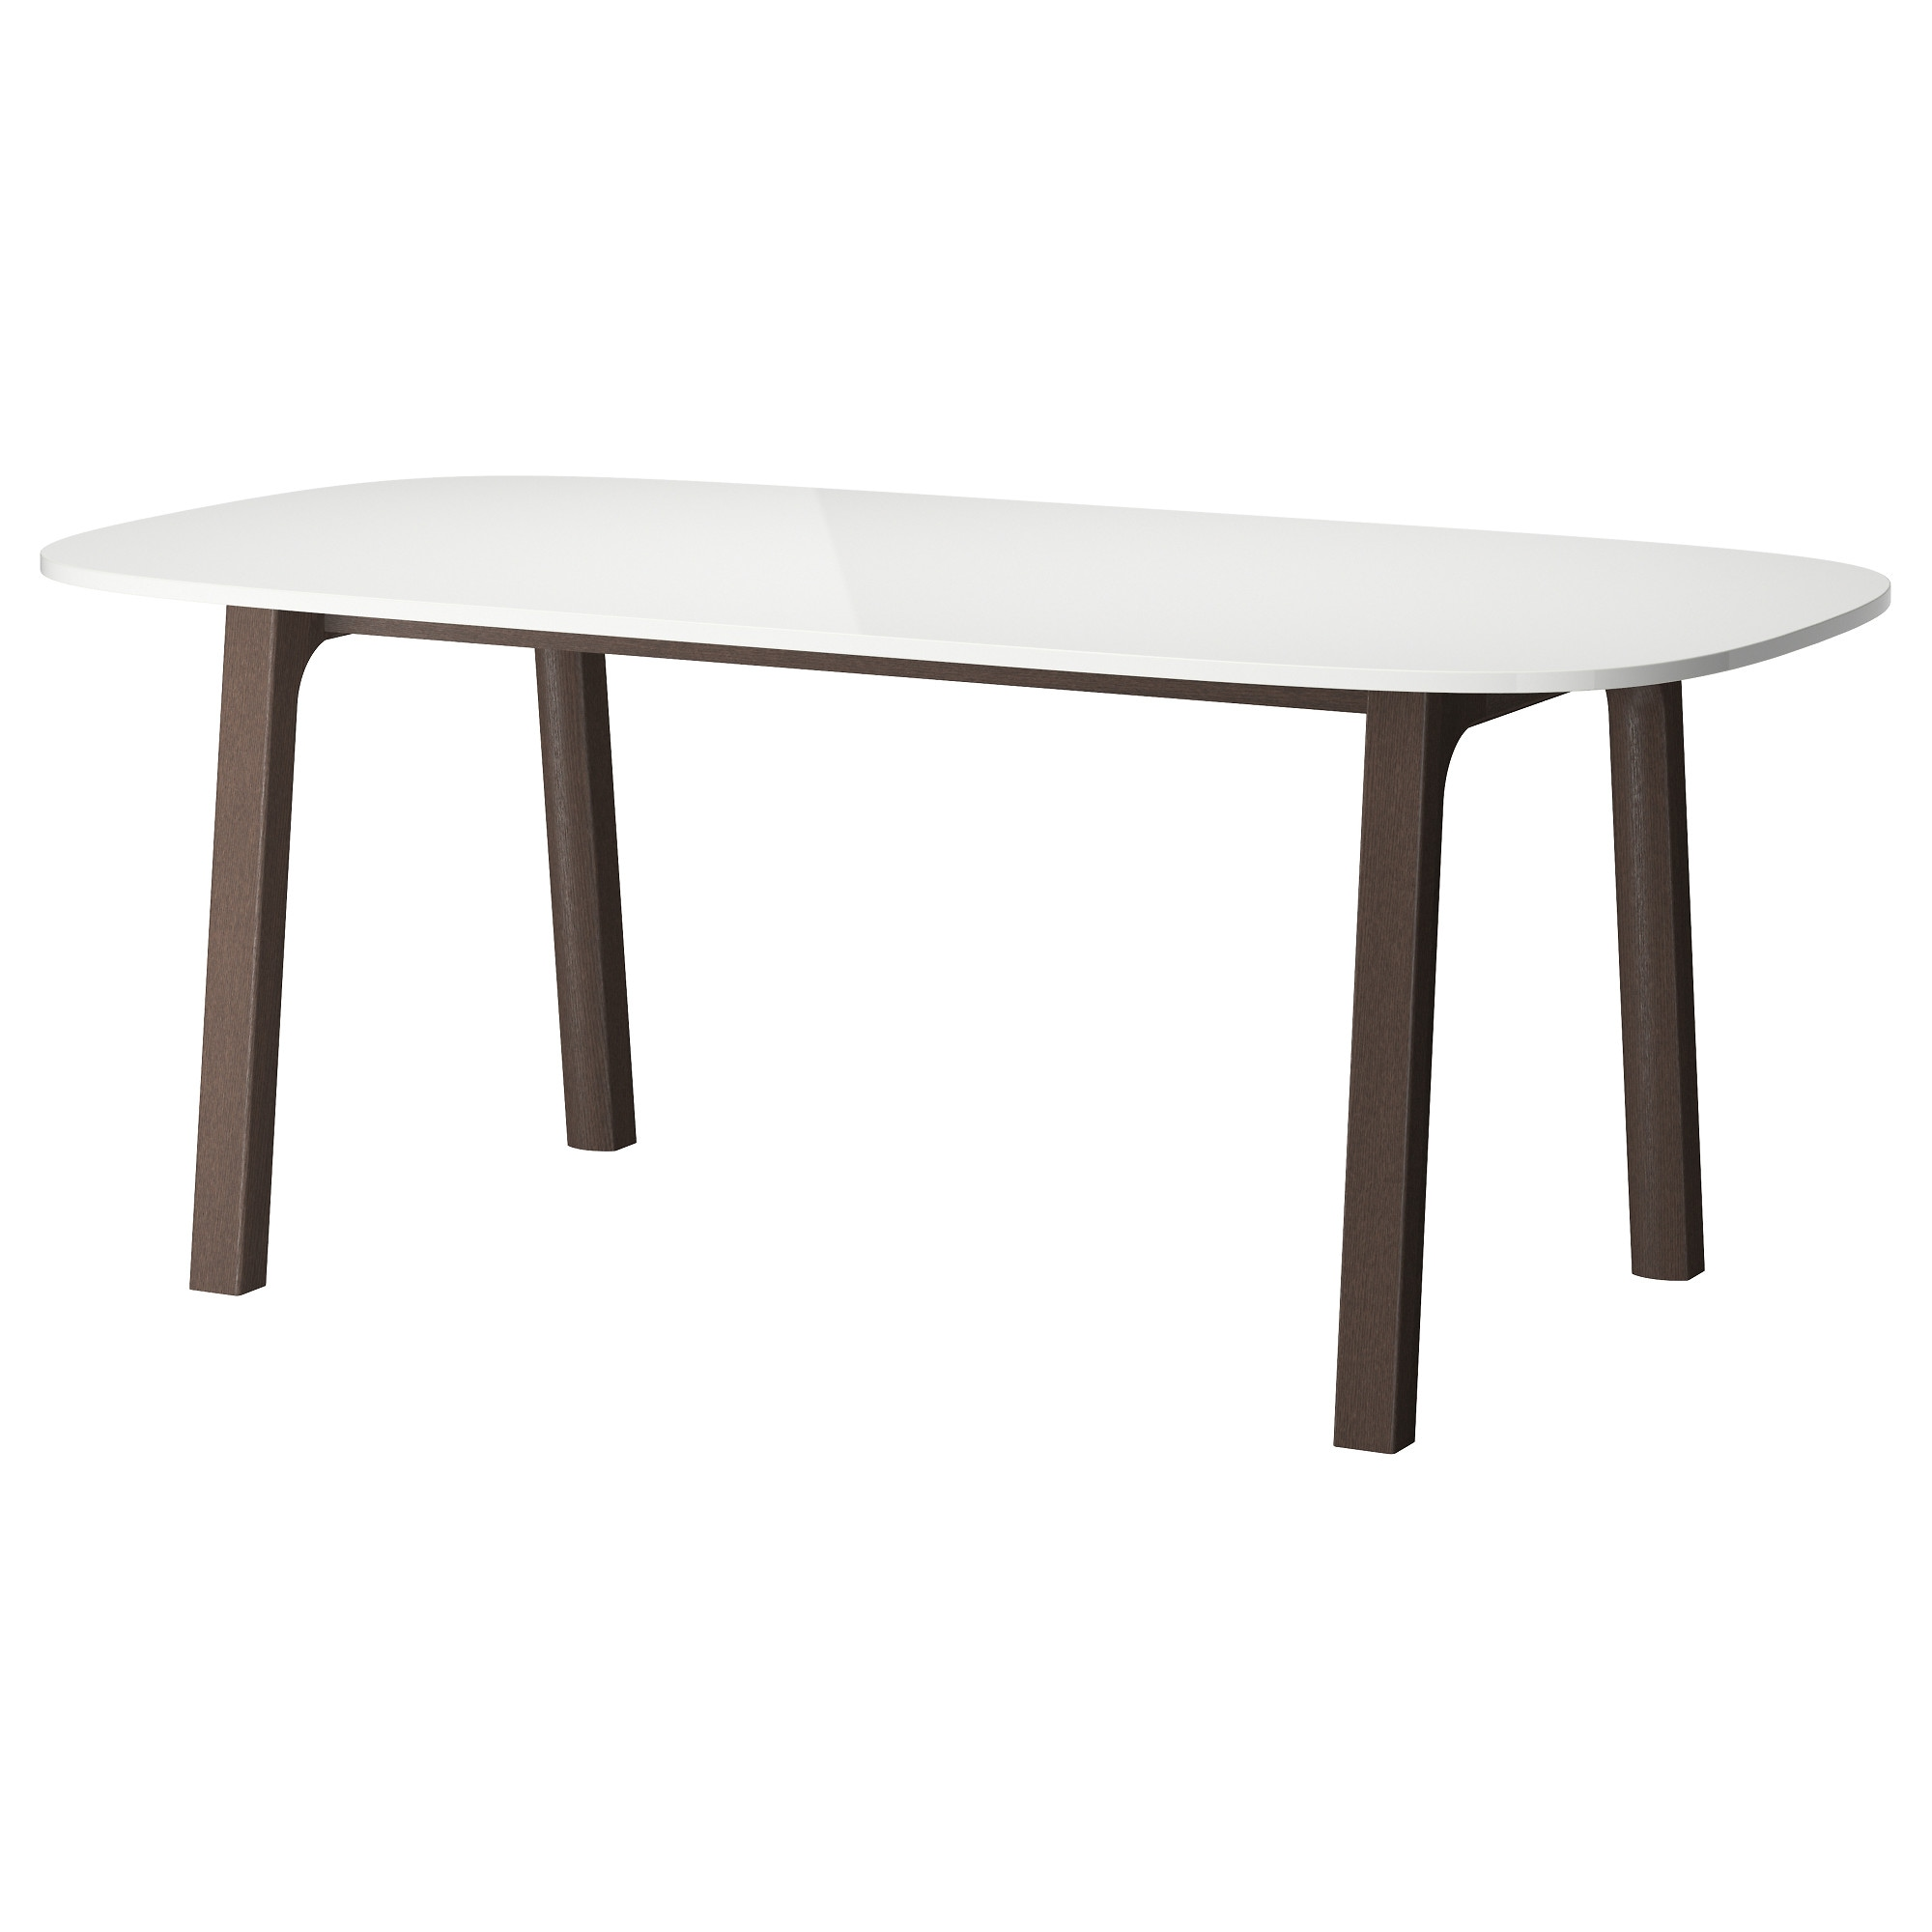 OPPEBY Table   Västanå Dark Brown   IKEA